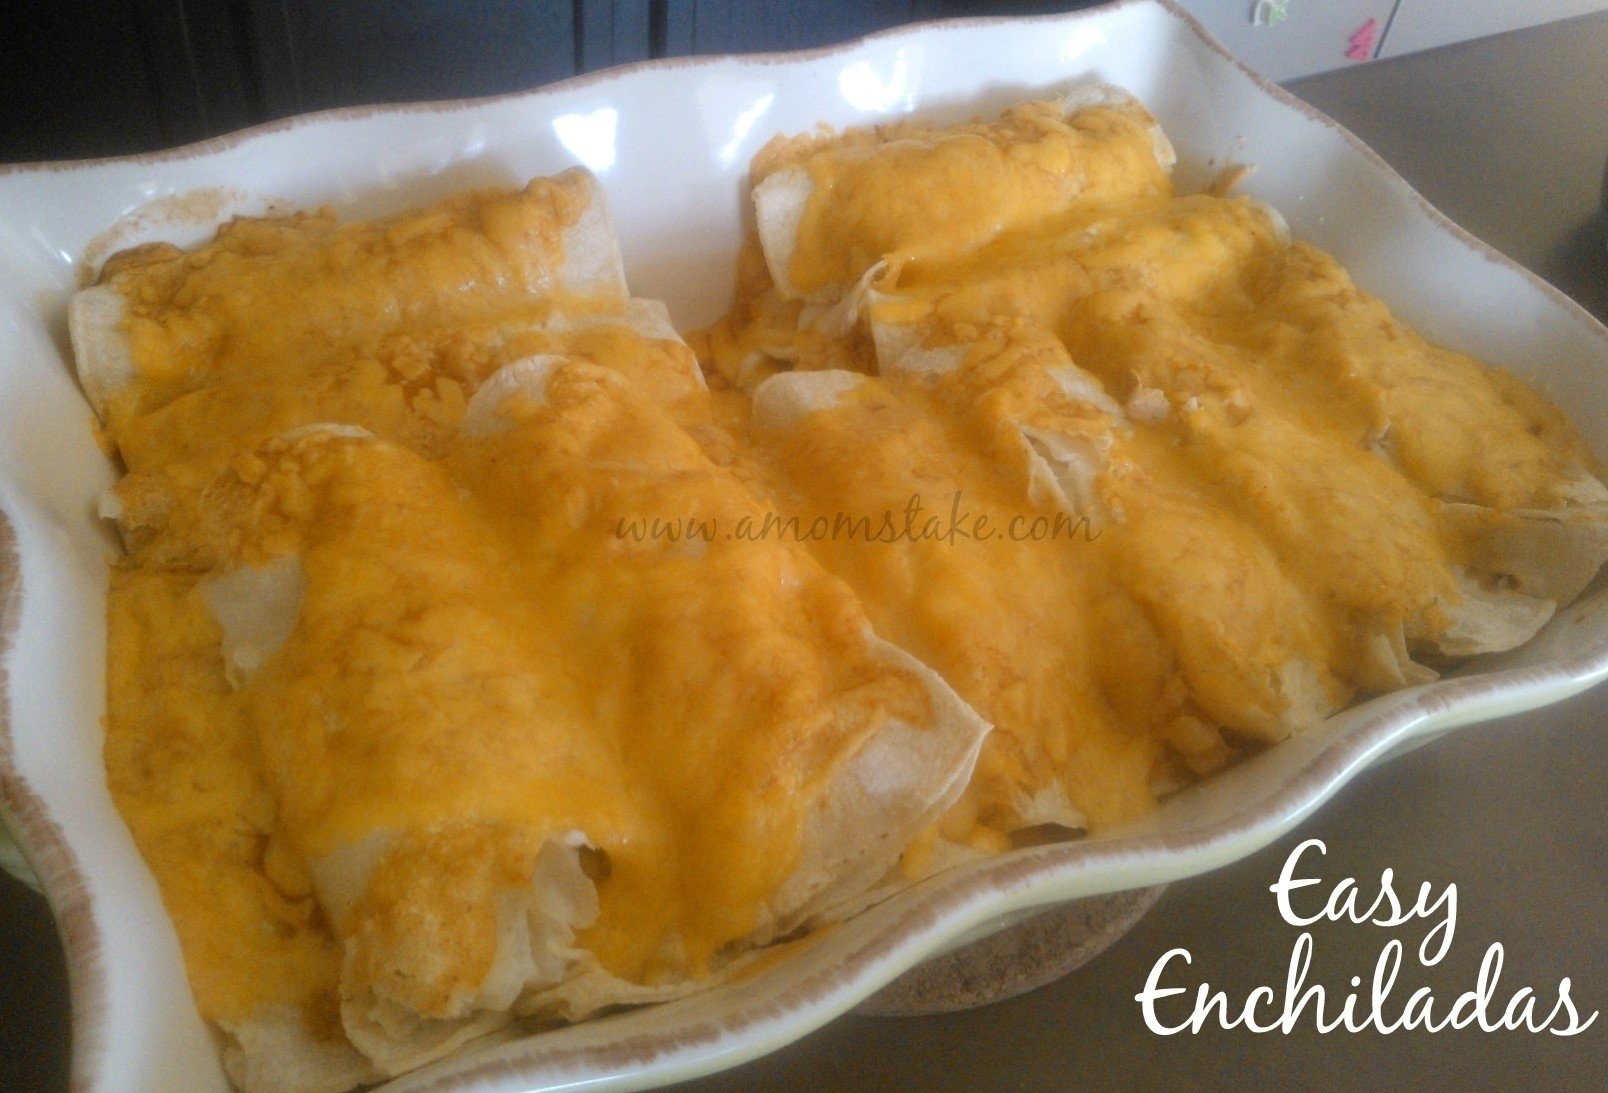 10 Attractive Easy Dinner Ideas With Chicken easy dinner recipes easy chicken enchilada recipe a moms take 2020